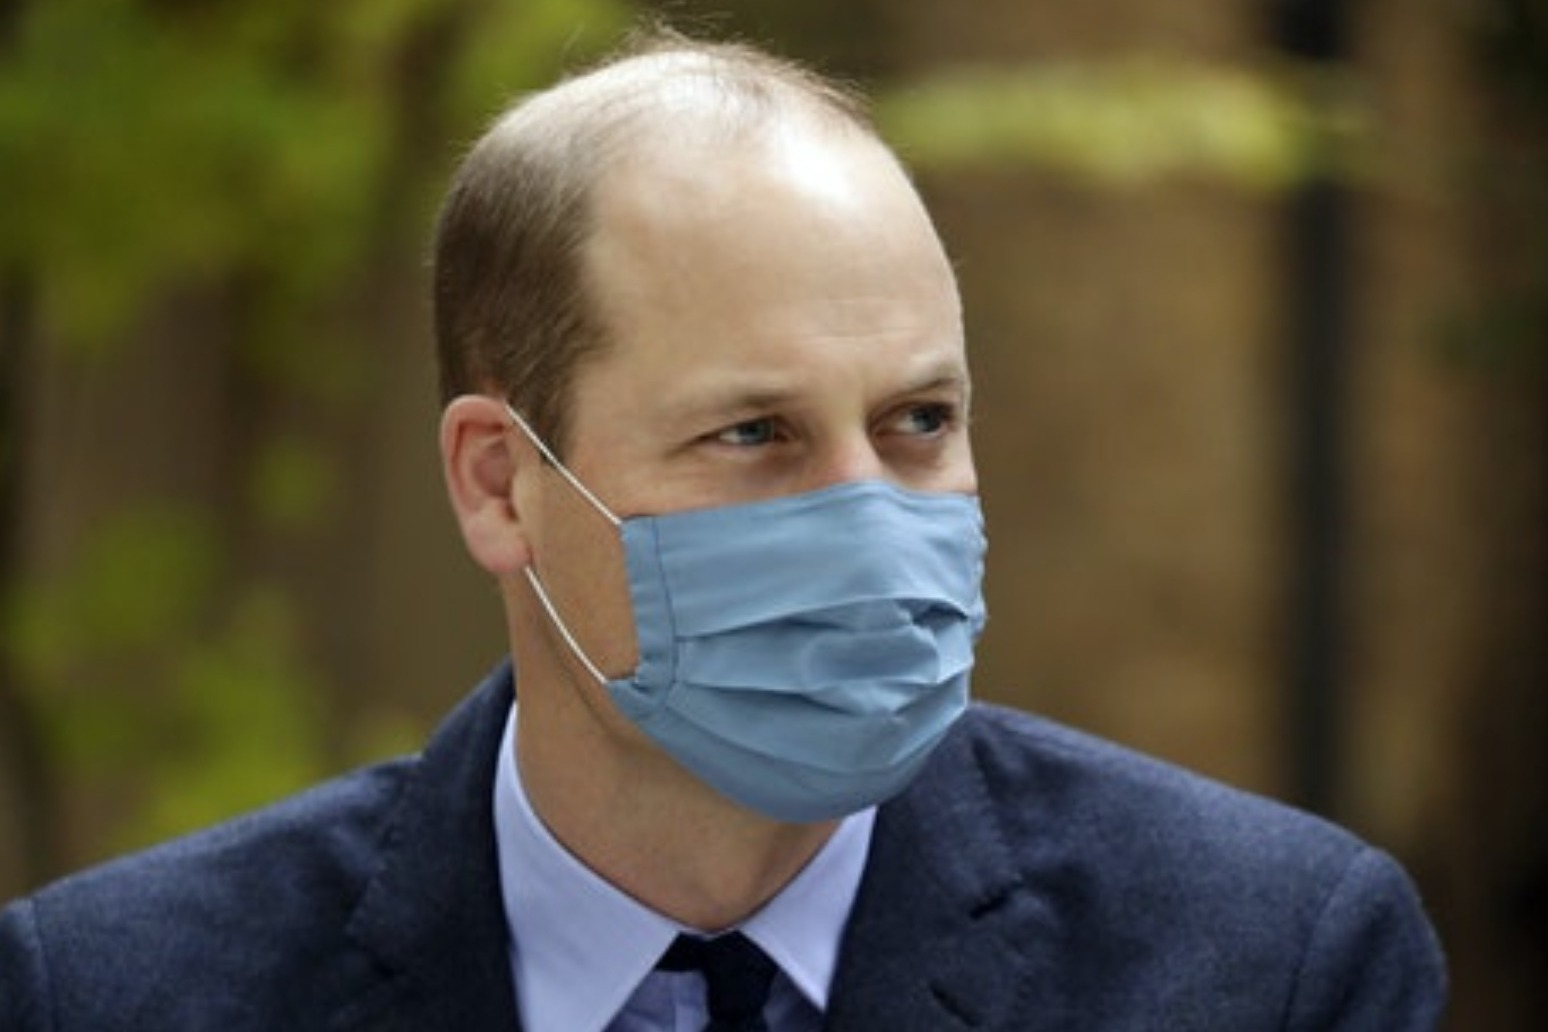 William tested positive for coronavirus in April